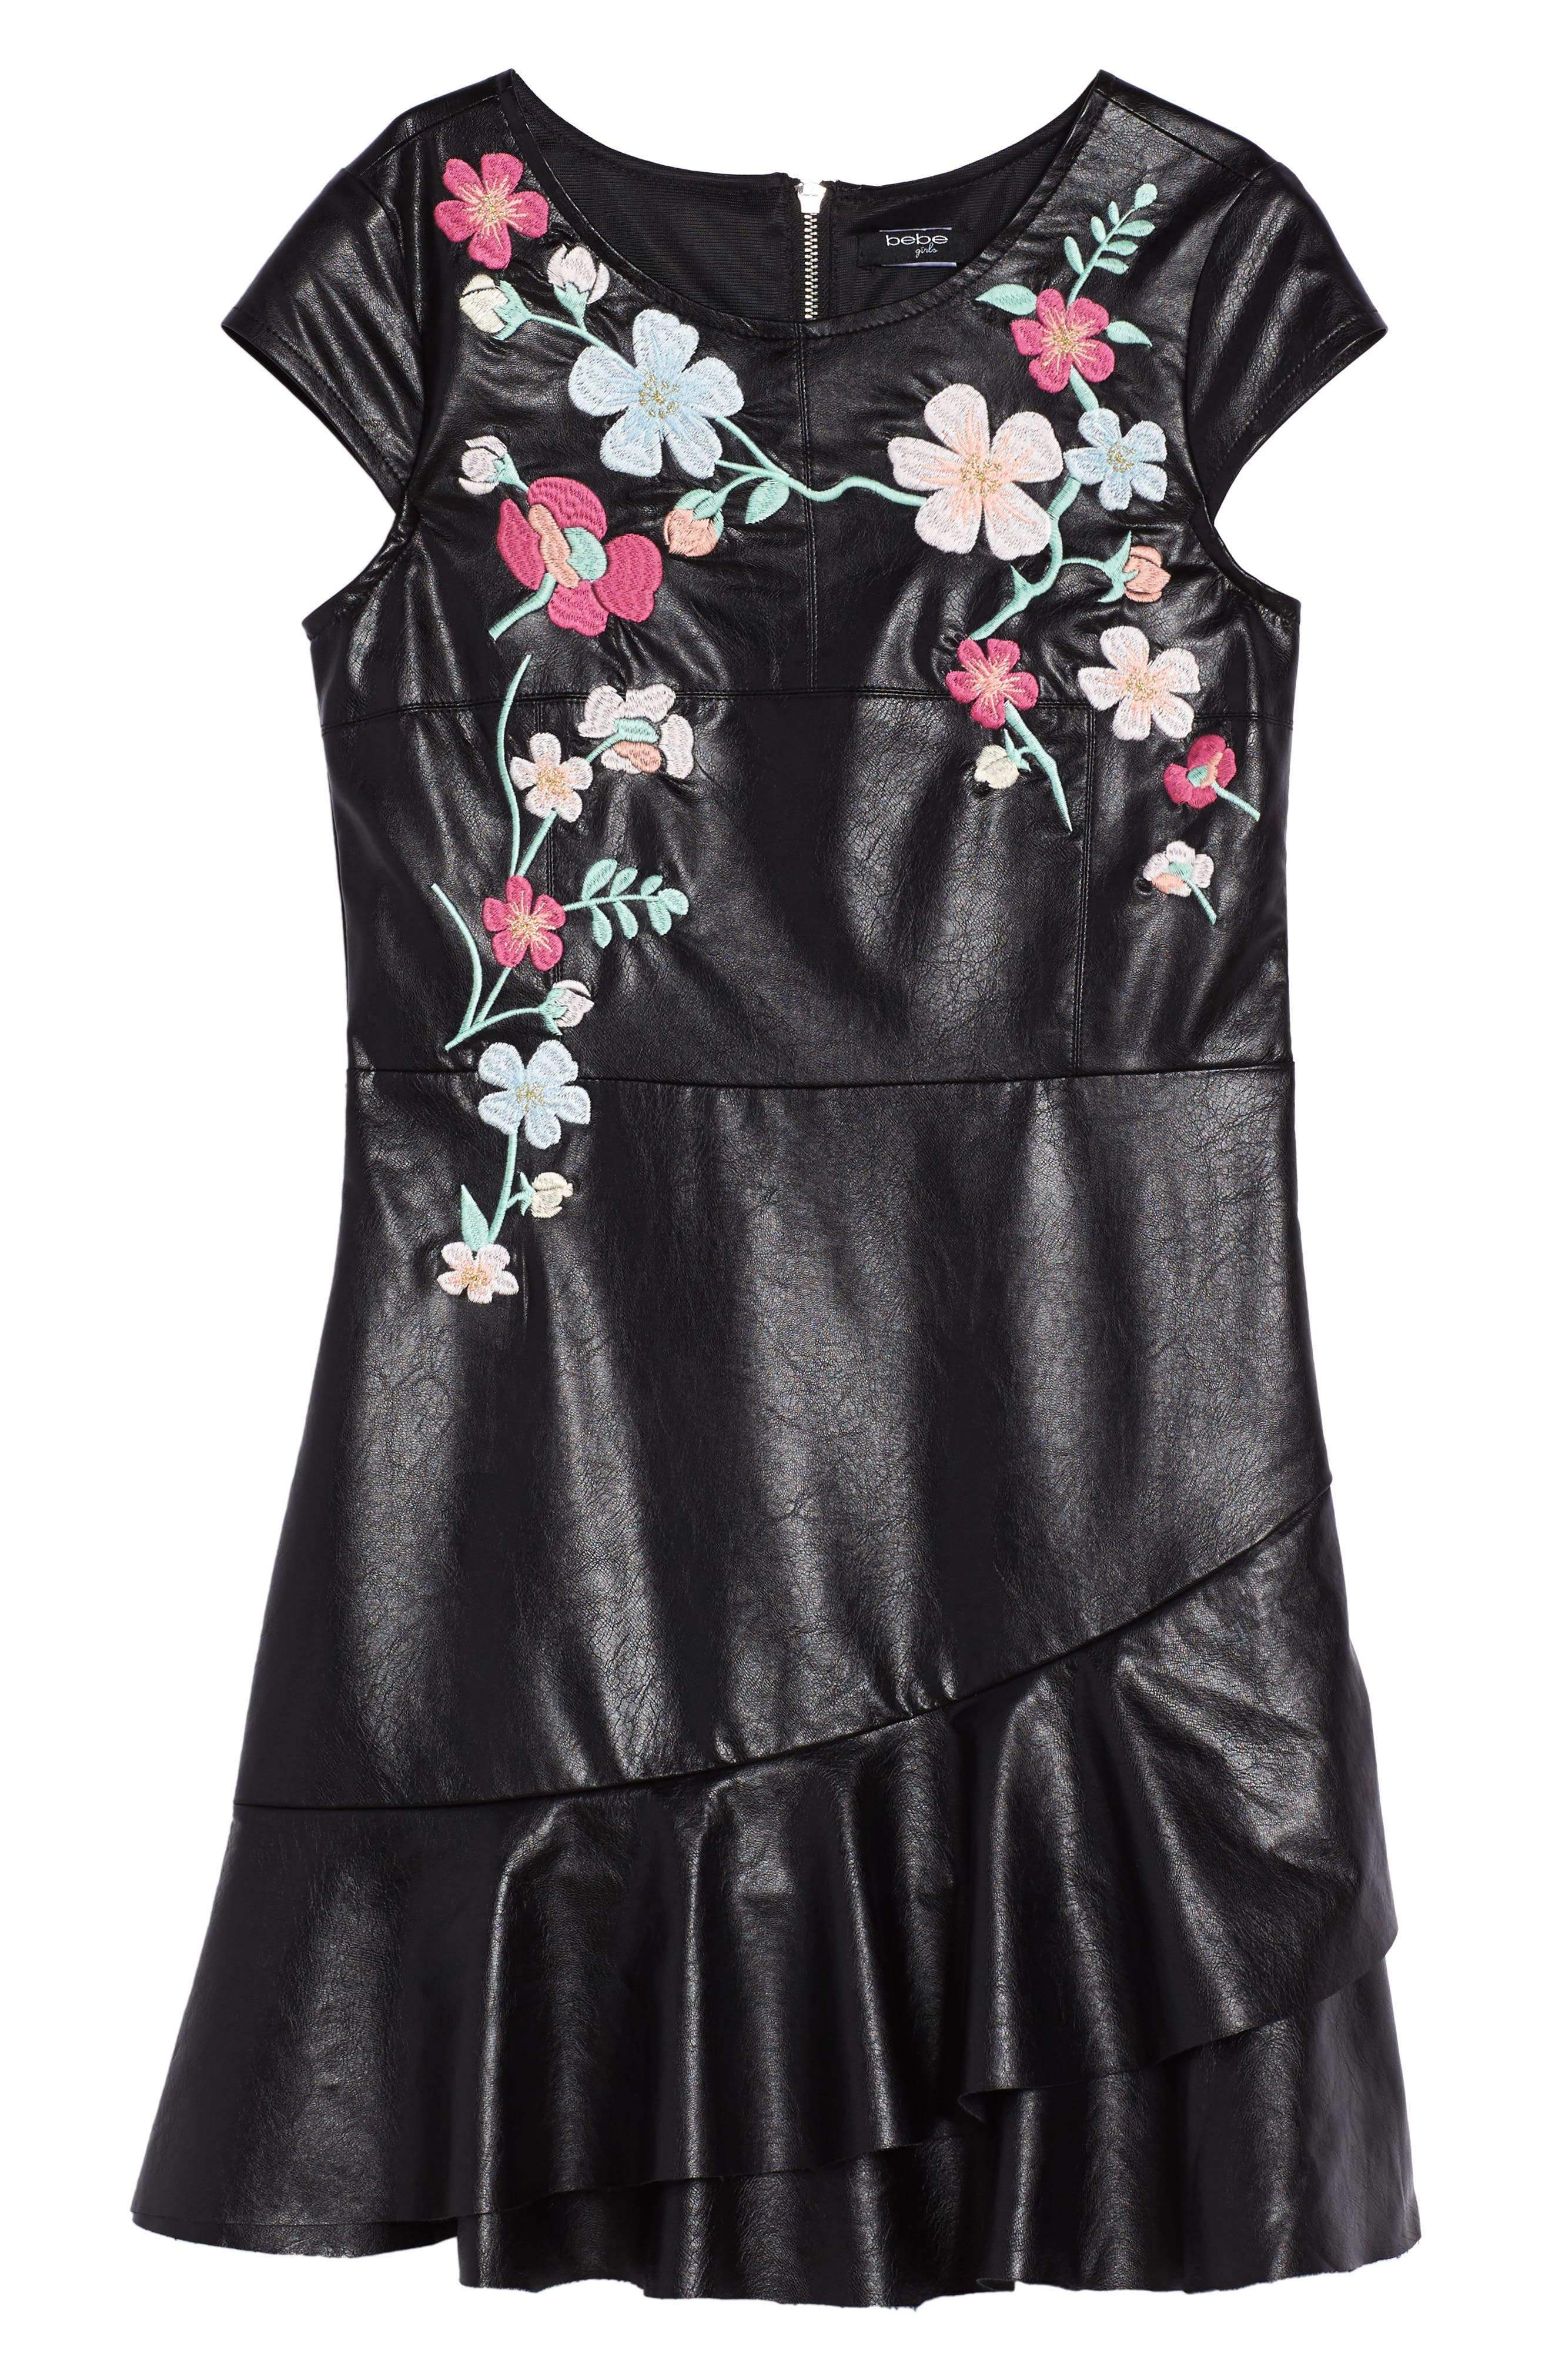 Embroidered Faux Leather Dress,                             Main thumbnail 1, color,                             Black